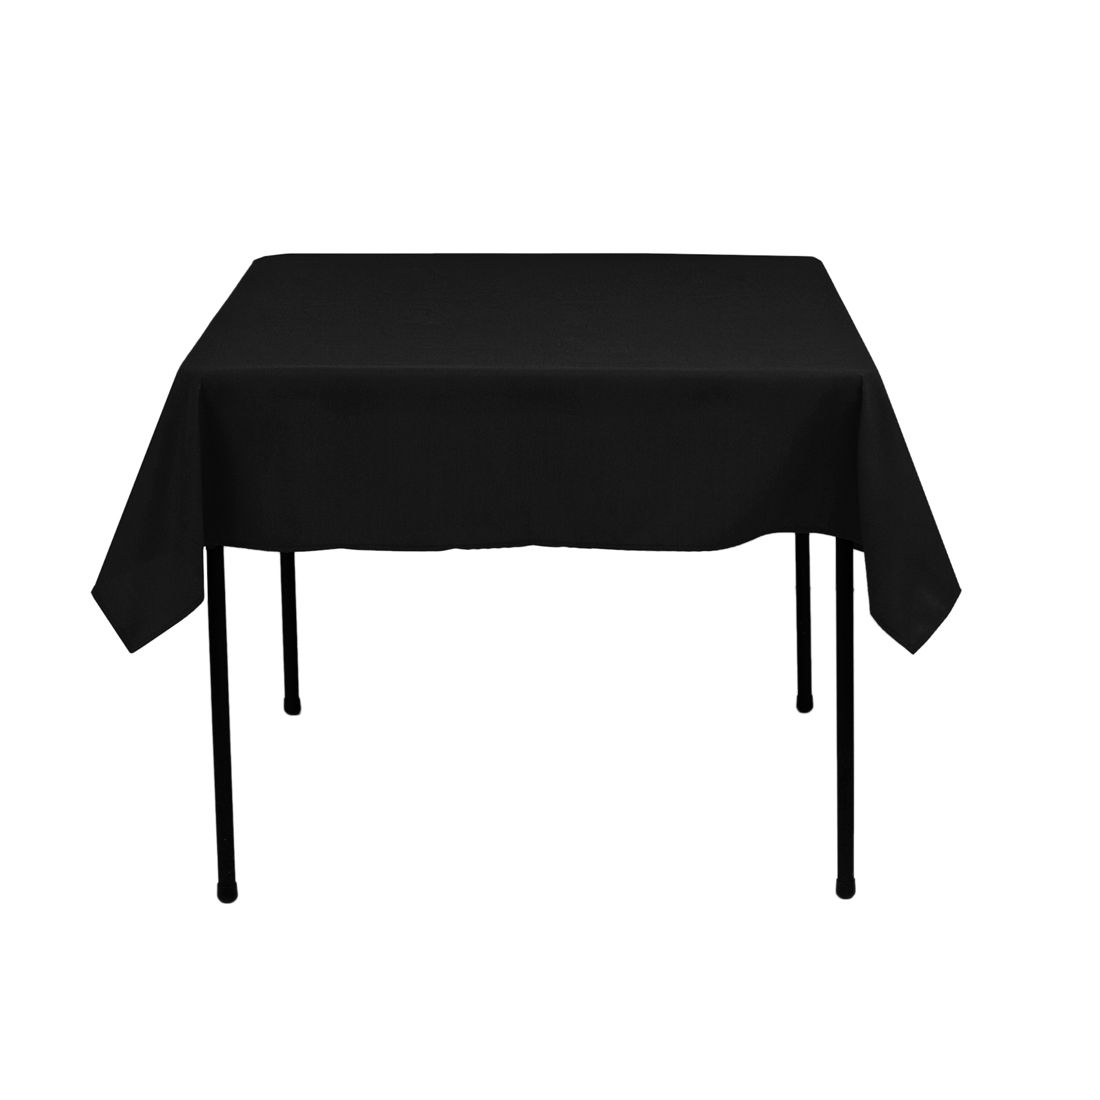 52 In. Square Spun Polyester Tablecloth Factory